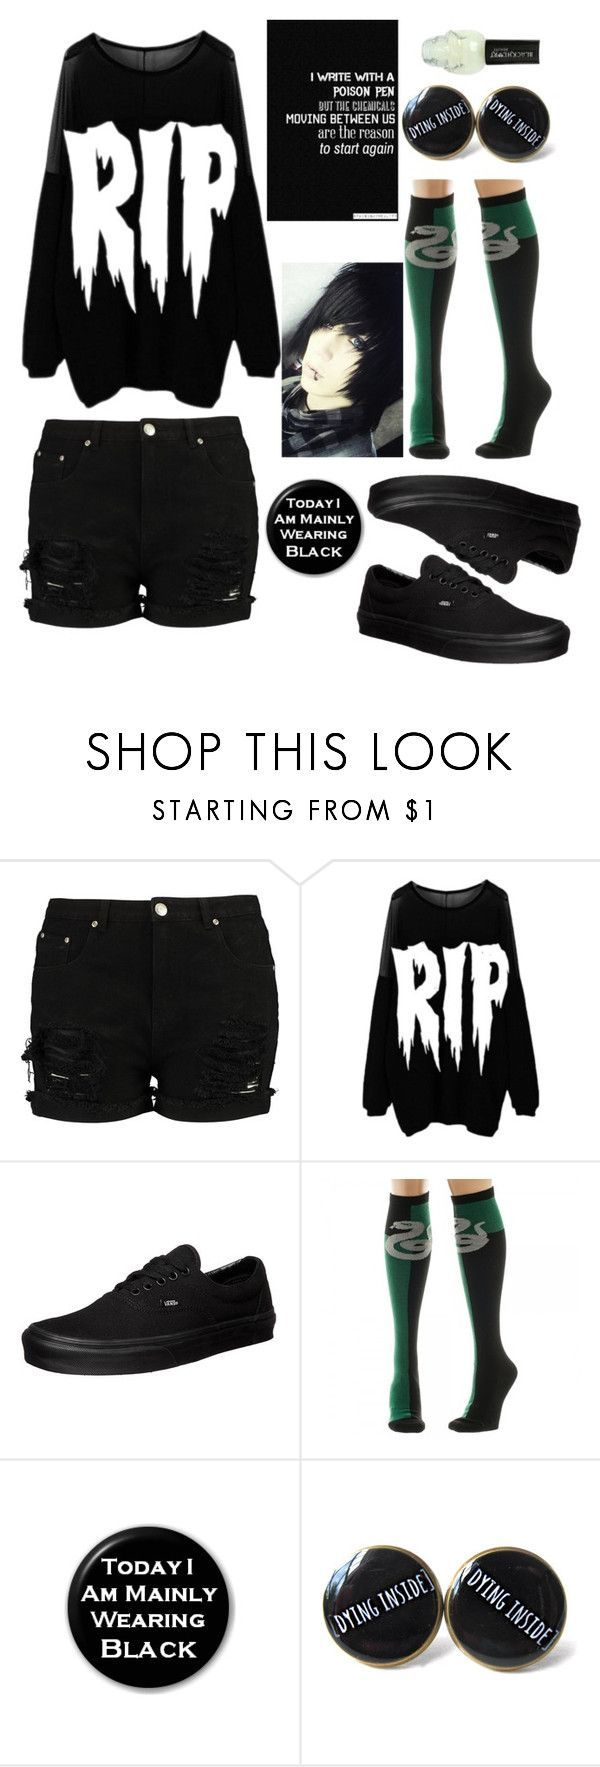 Untitled #663 by anjalenabvb on Polyvore featuring Nikki Lipstick, Vans and Hot Topic #hottopicclothes